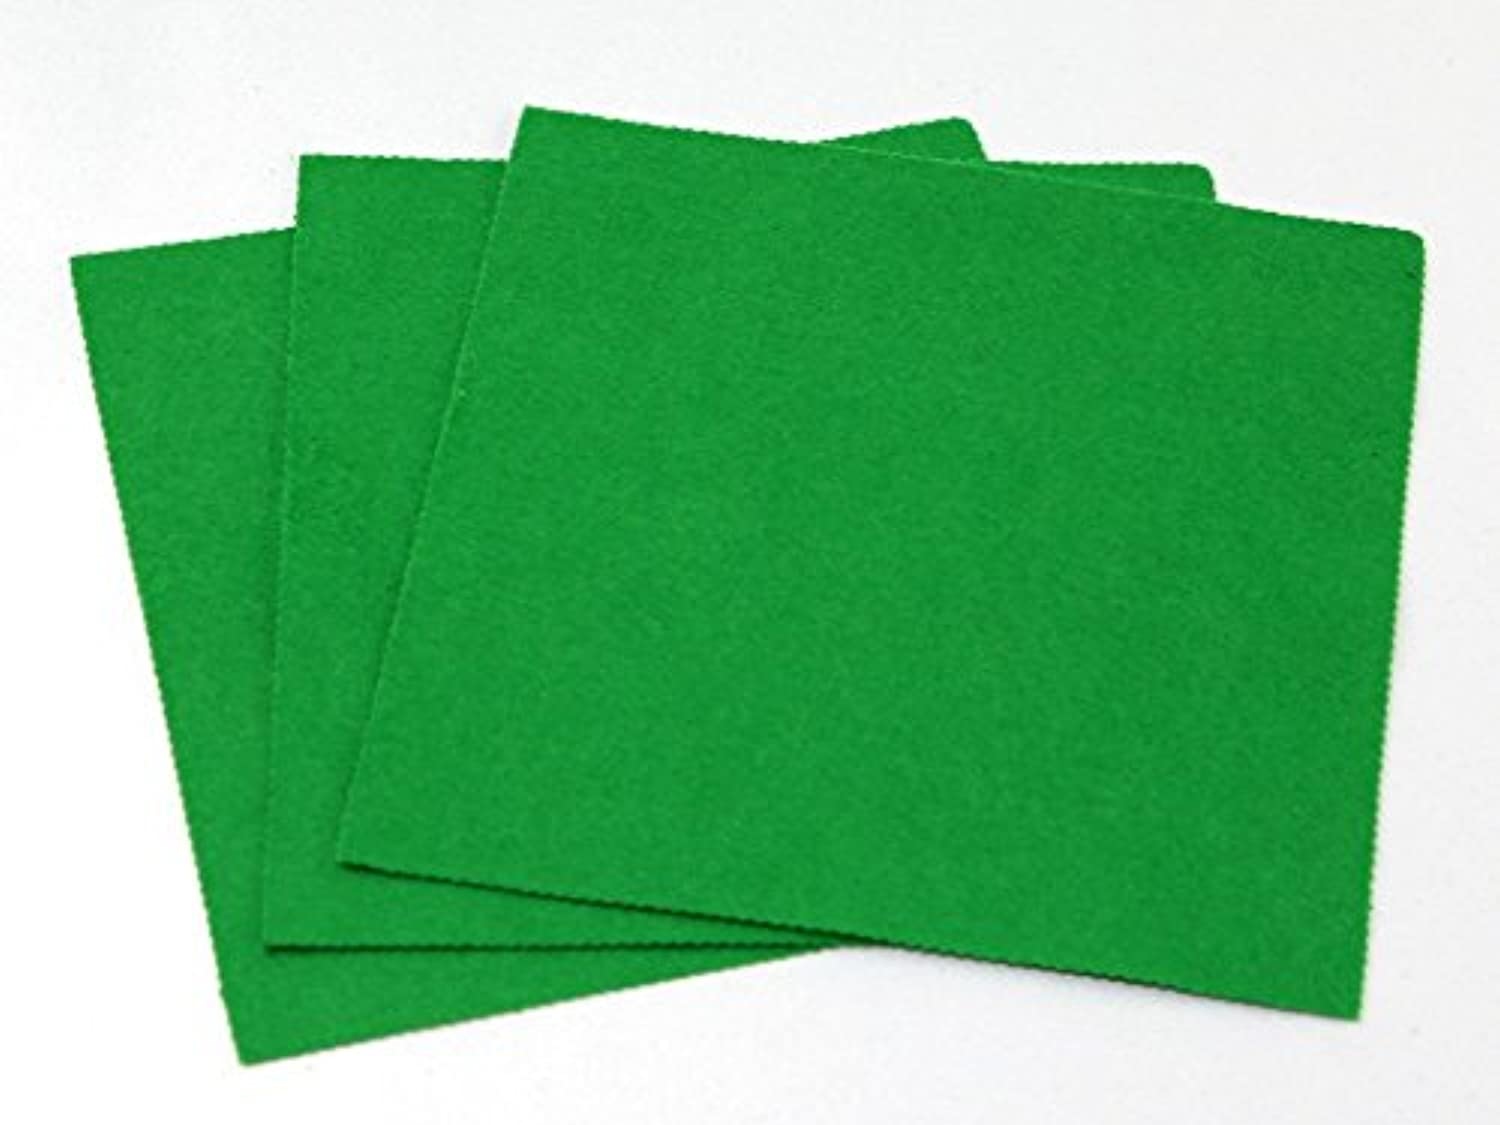 Minerva Crafts Sticky Back Self Adhesive Acrylic Felt Fabric 18  Square Meadow Green - per pack of 100